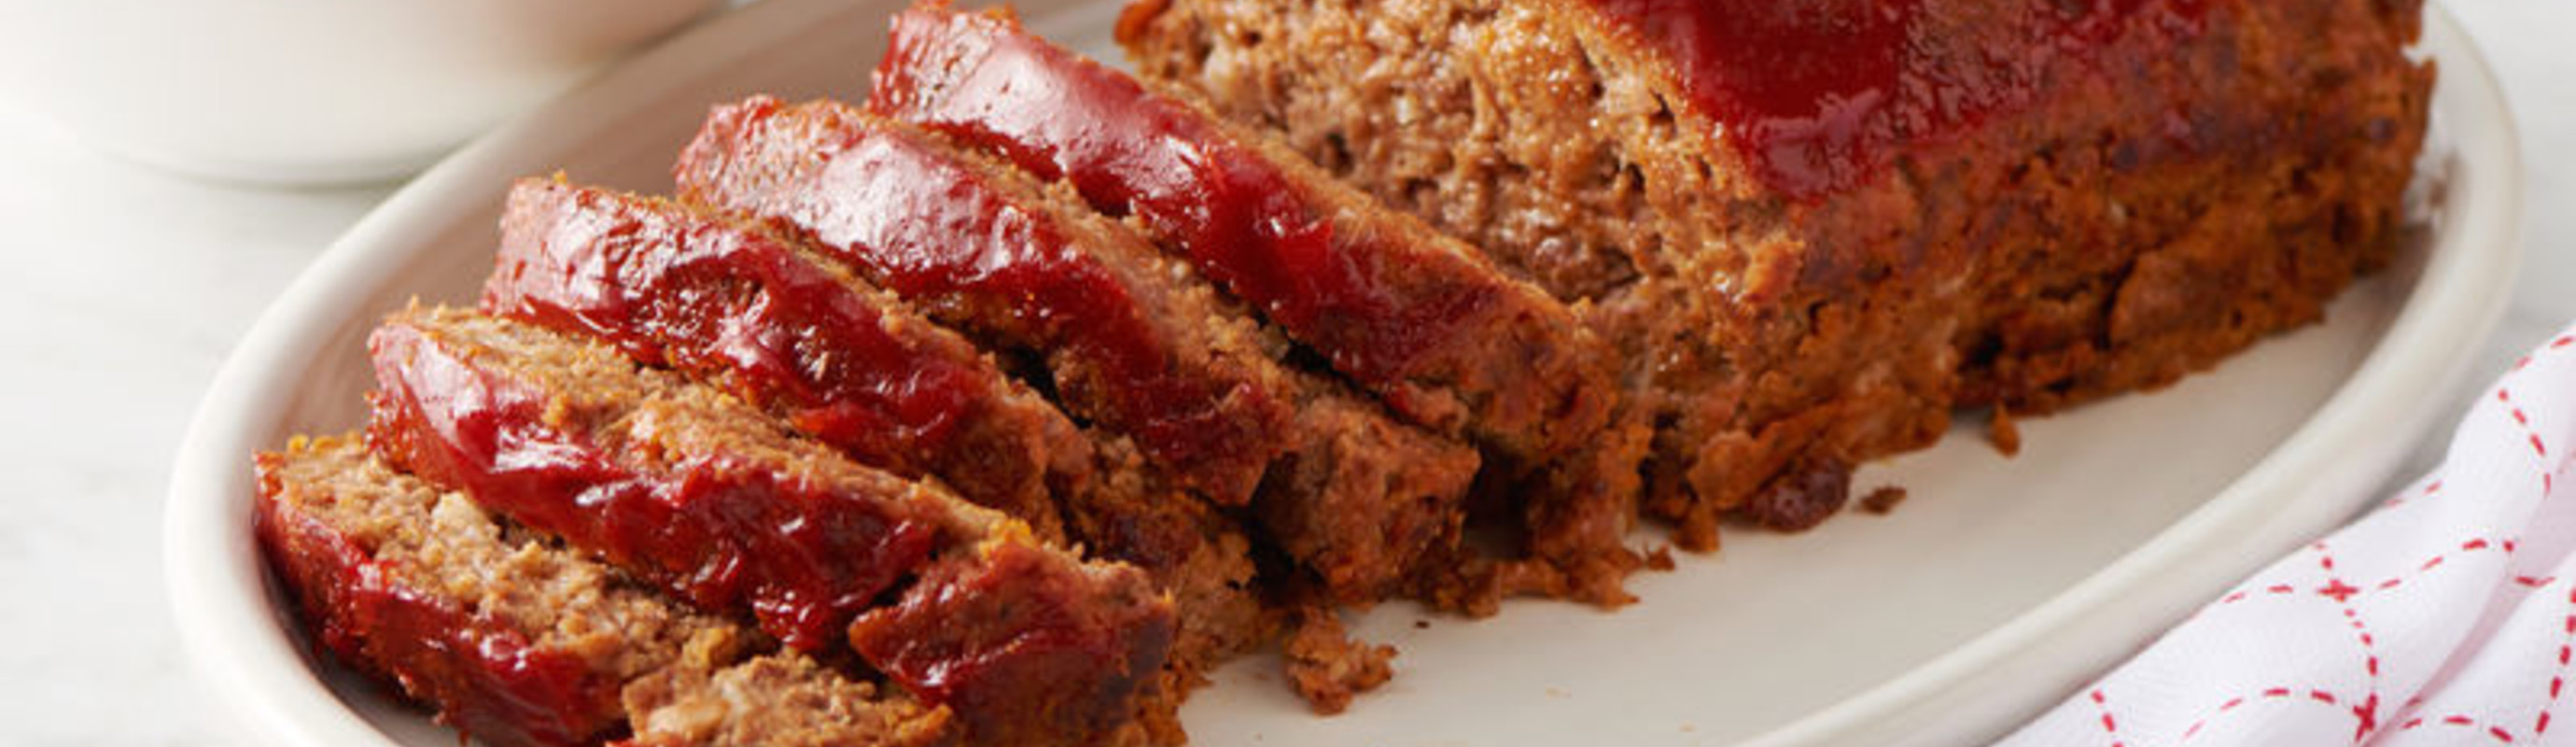 Our Store Manager's Favorite Meatloaf Recipe